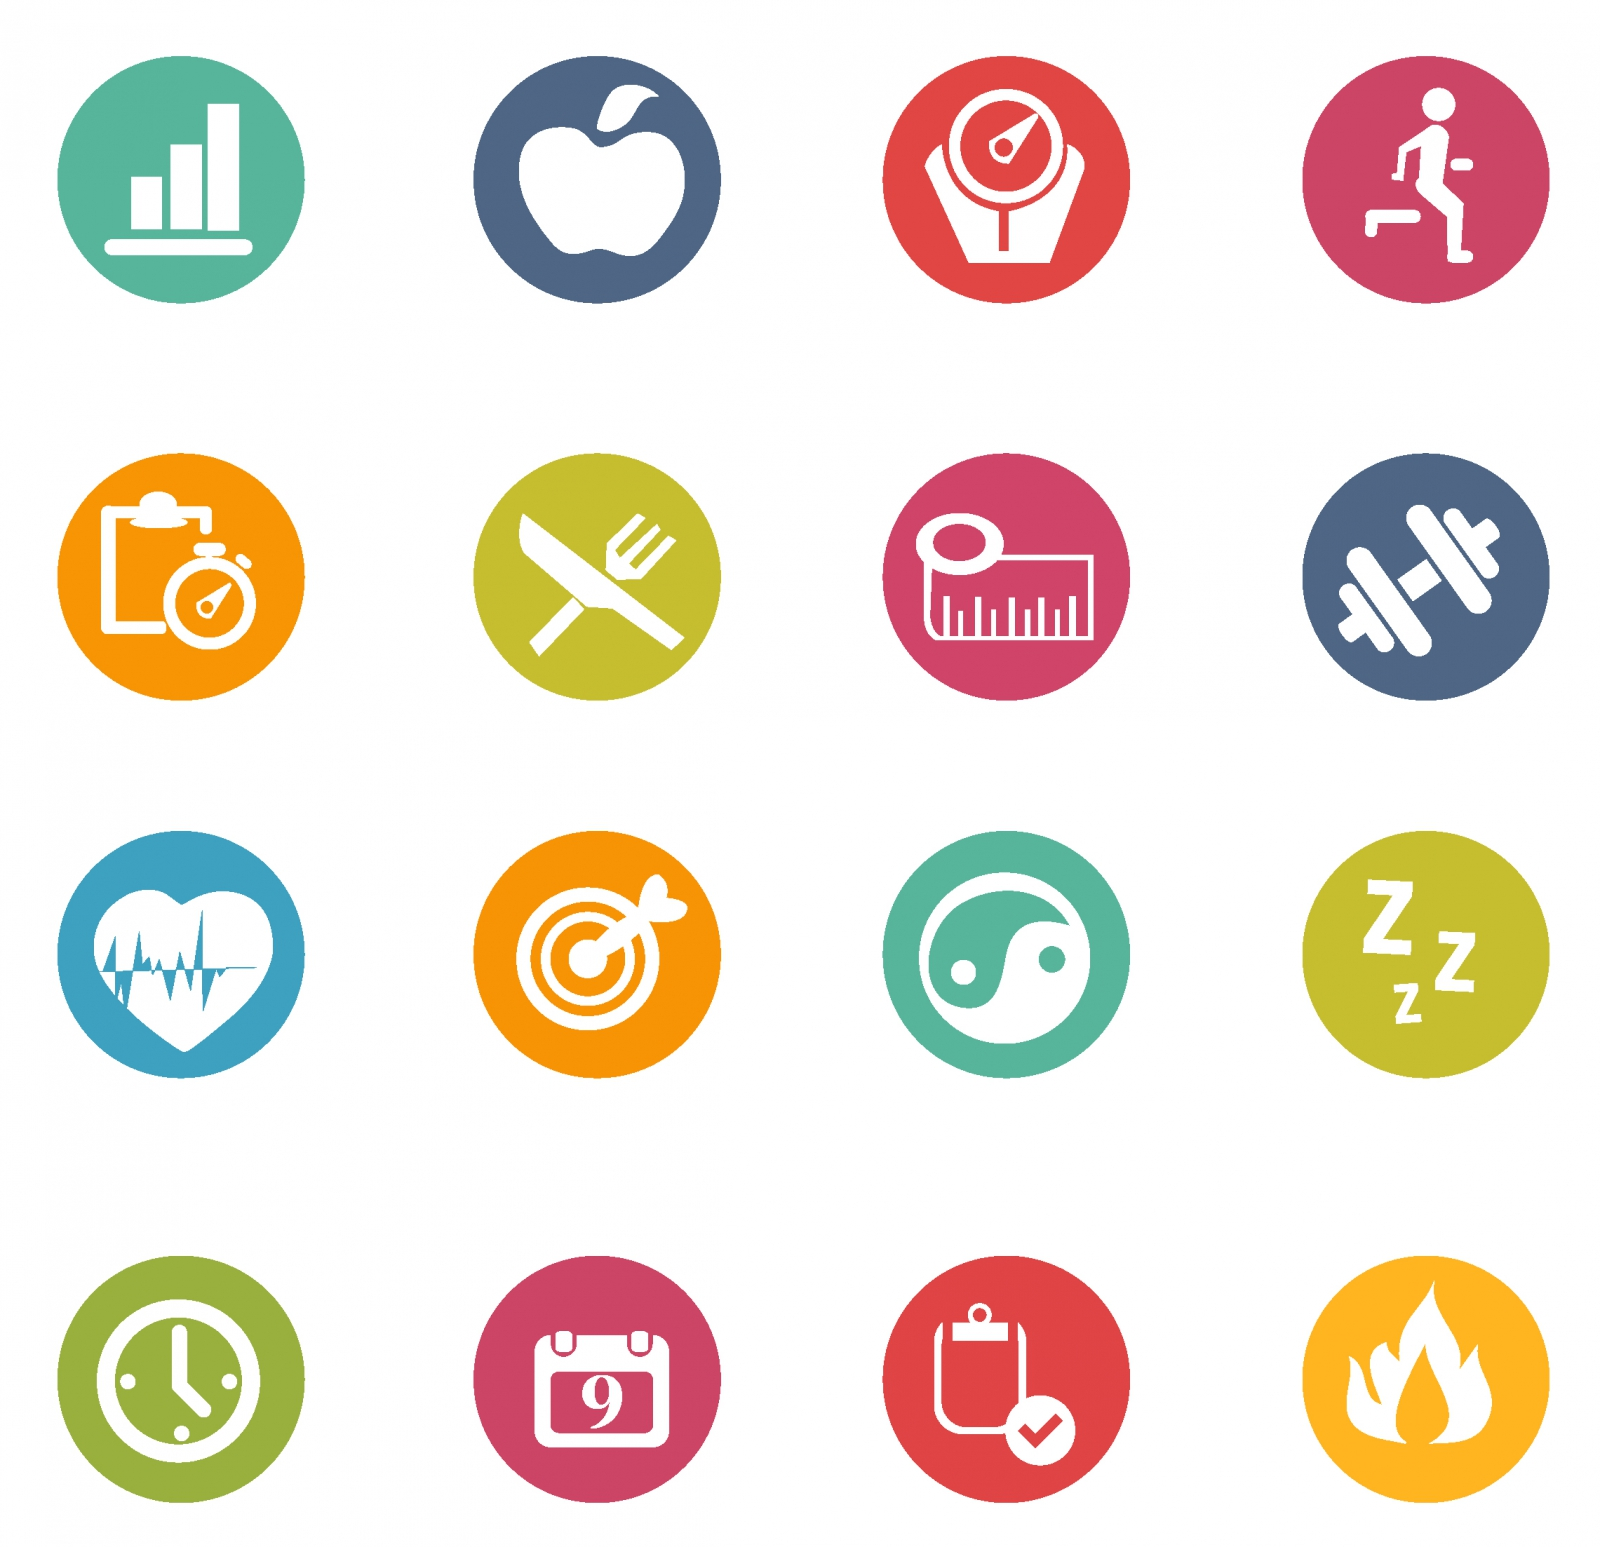 Free Vector Fitness Icons 132989 Fitness Icons Png Transparent Background Free Download 292 Freeiconspng